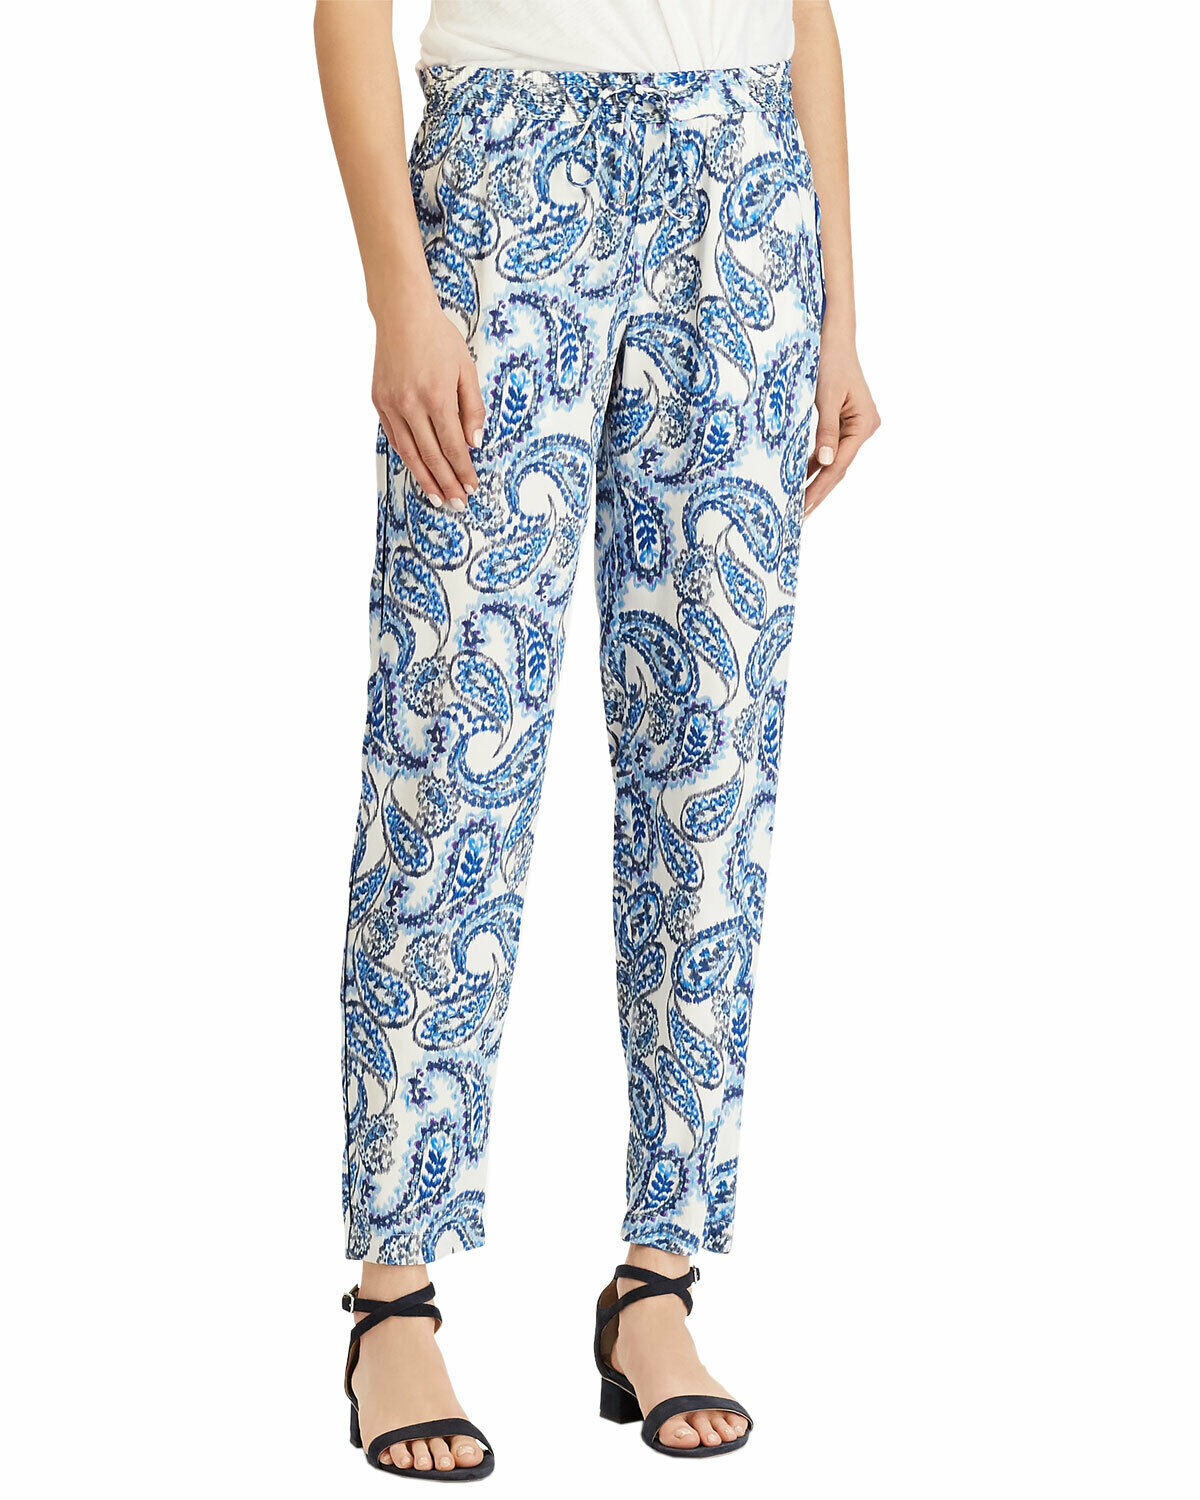 Lauren Ralph Lauren Ladies Twill Skinny Pants 8 bluee & White Paisley Lightweight